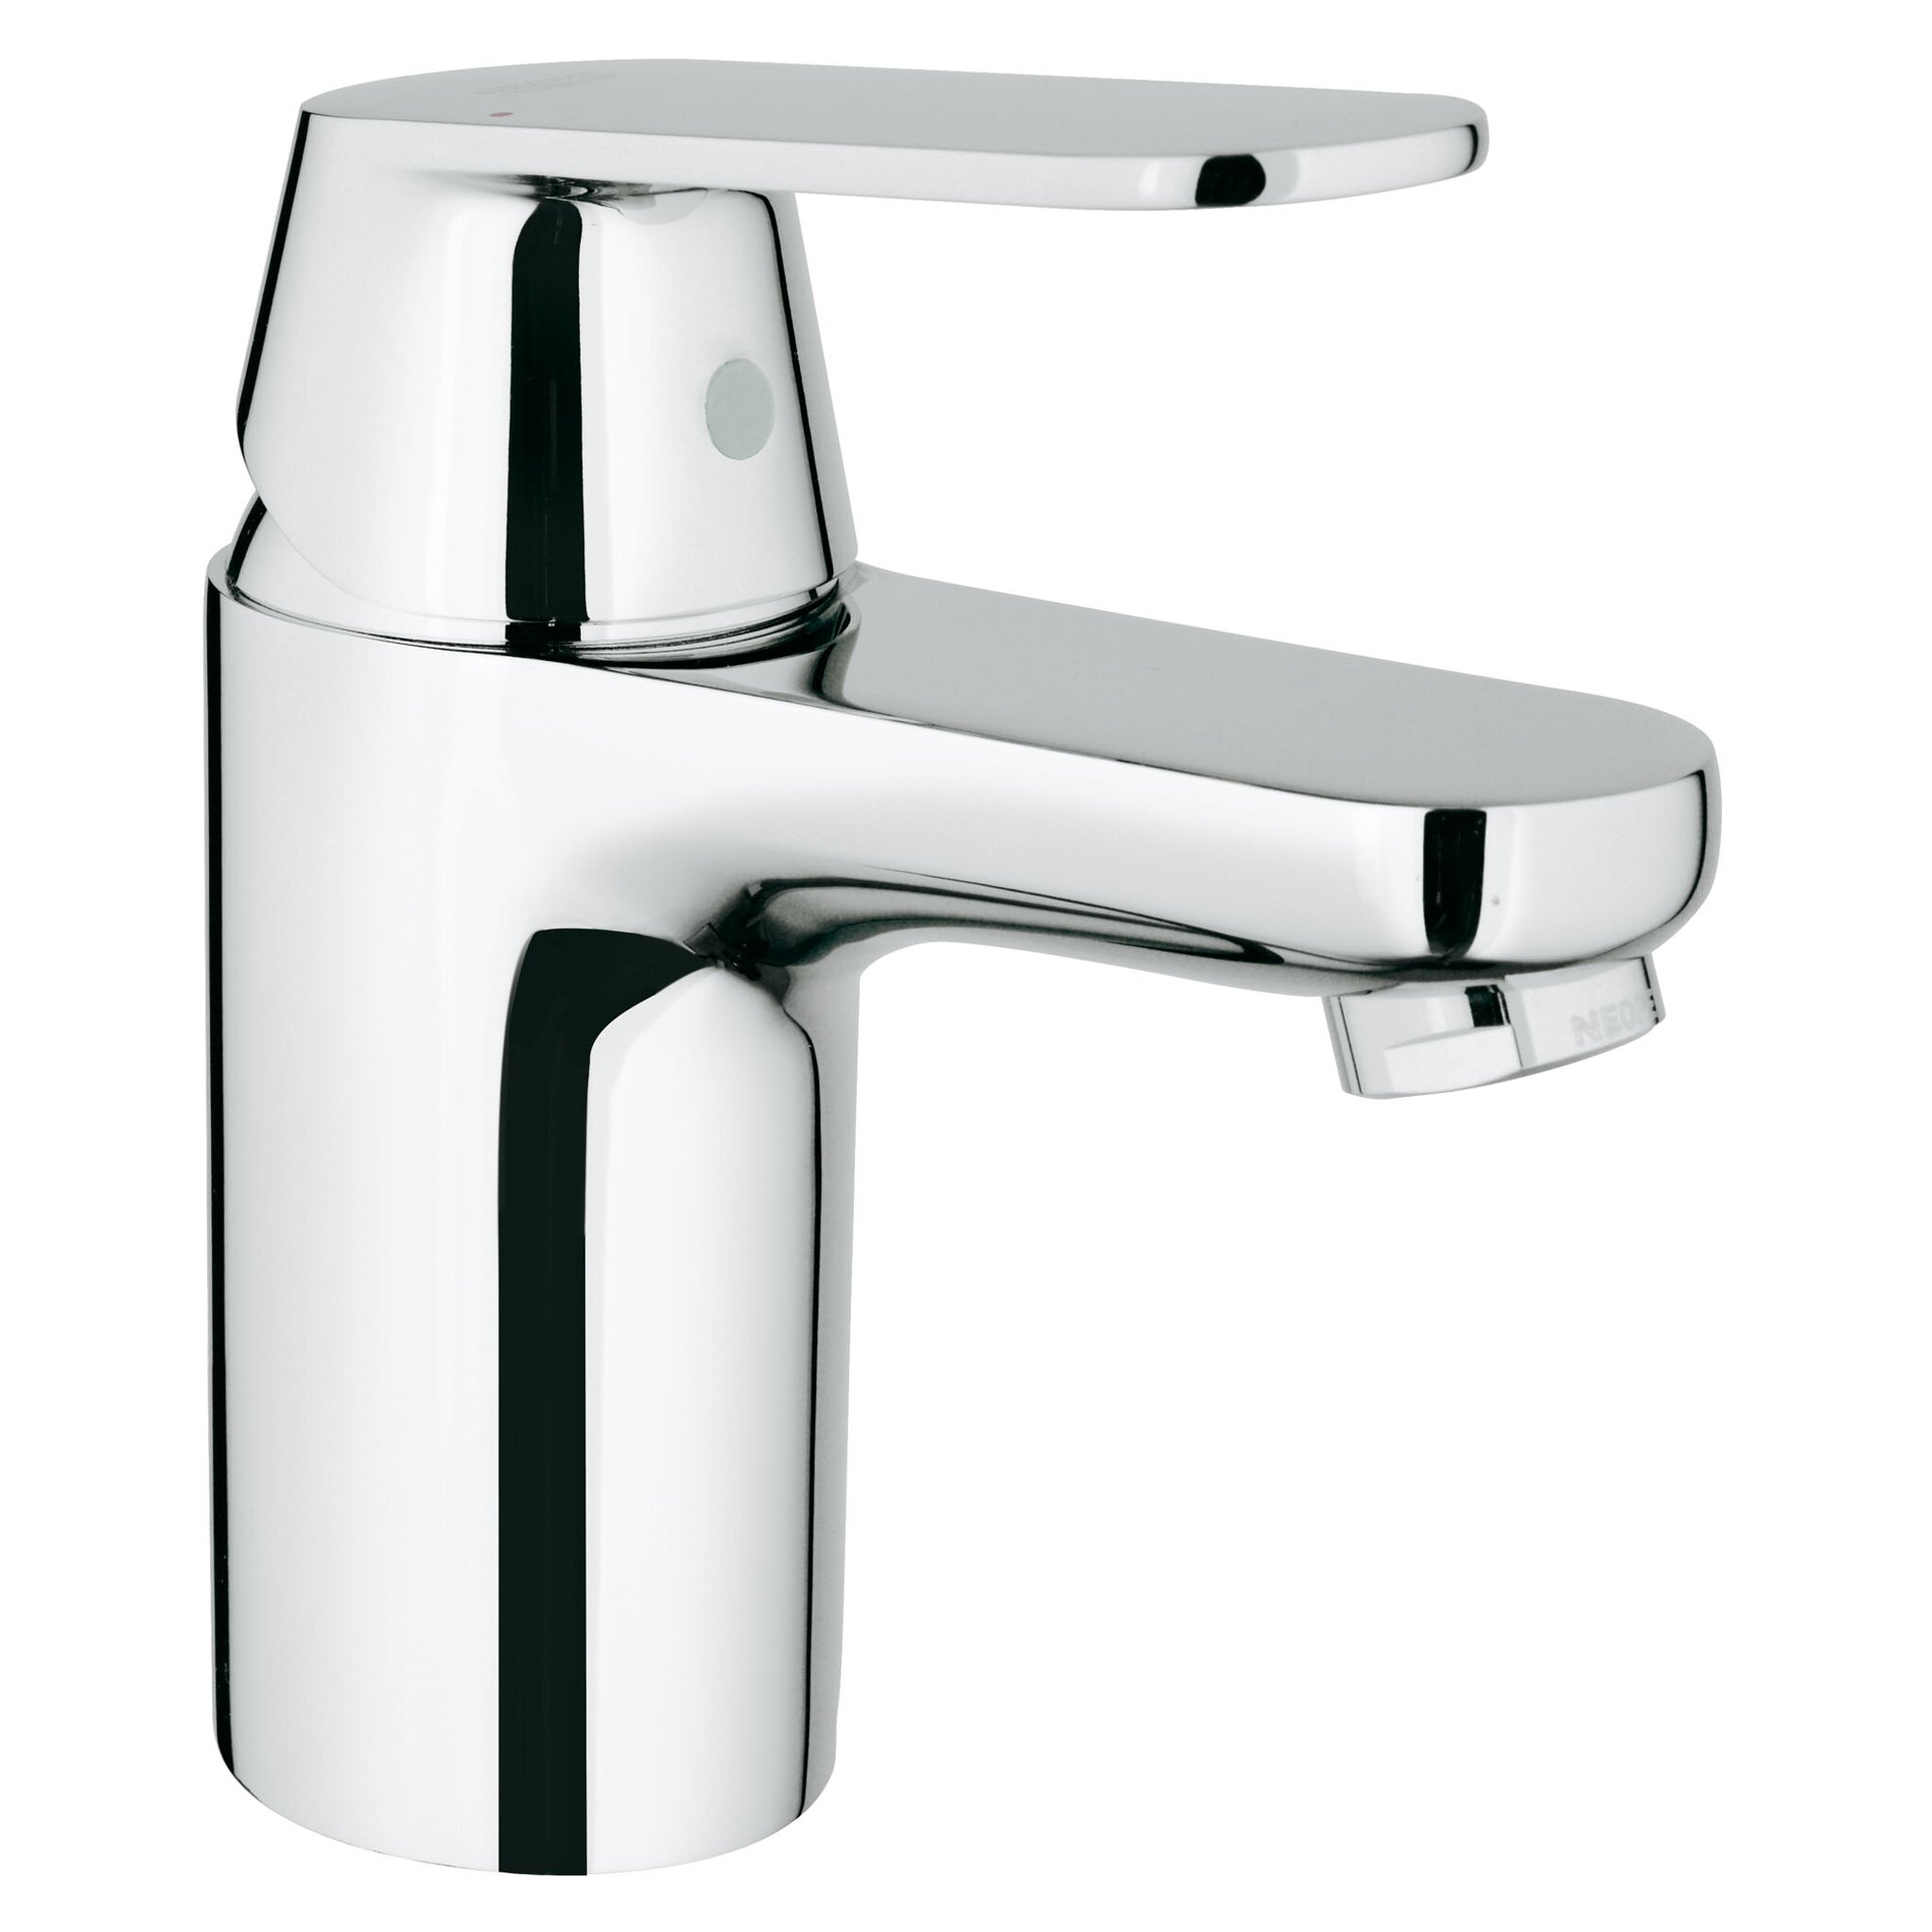 Bathroom Faucet Grohe Eurosmart Single Handle Single Hole Bathroom Faucet